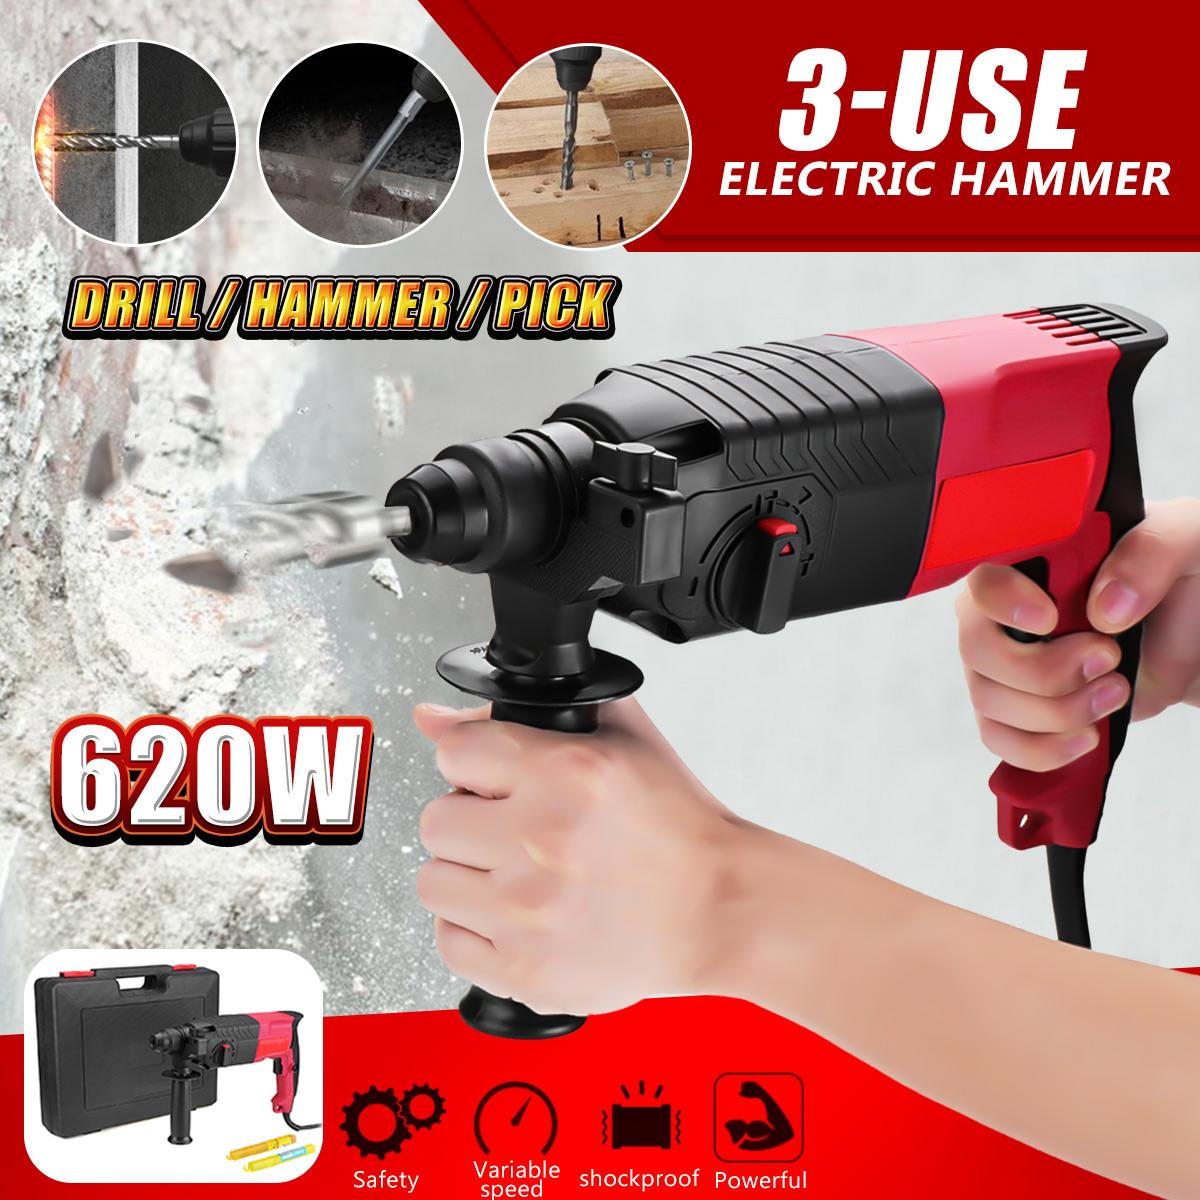 650W 220V 24mm 3 Function Electric Rotary Hammer Electrodrill Household Cordless Power Electric Impact Drill Pick Gift 2 Bit650W 220V 24mm 3 Function Electric Rotary Hammer Electrodrill Household Cordless Power Electric Impact Drill Pick Gift 2 Bit